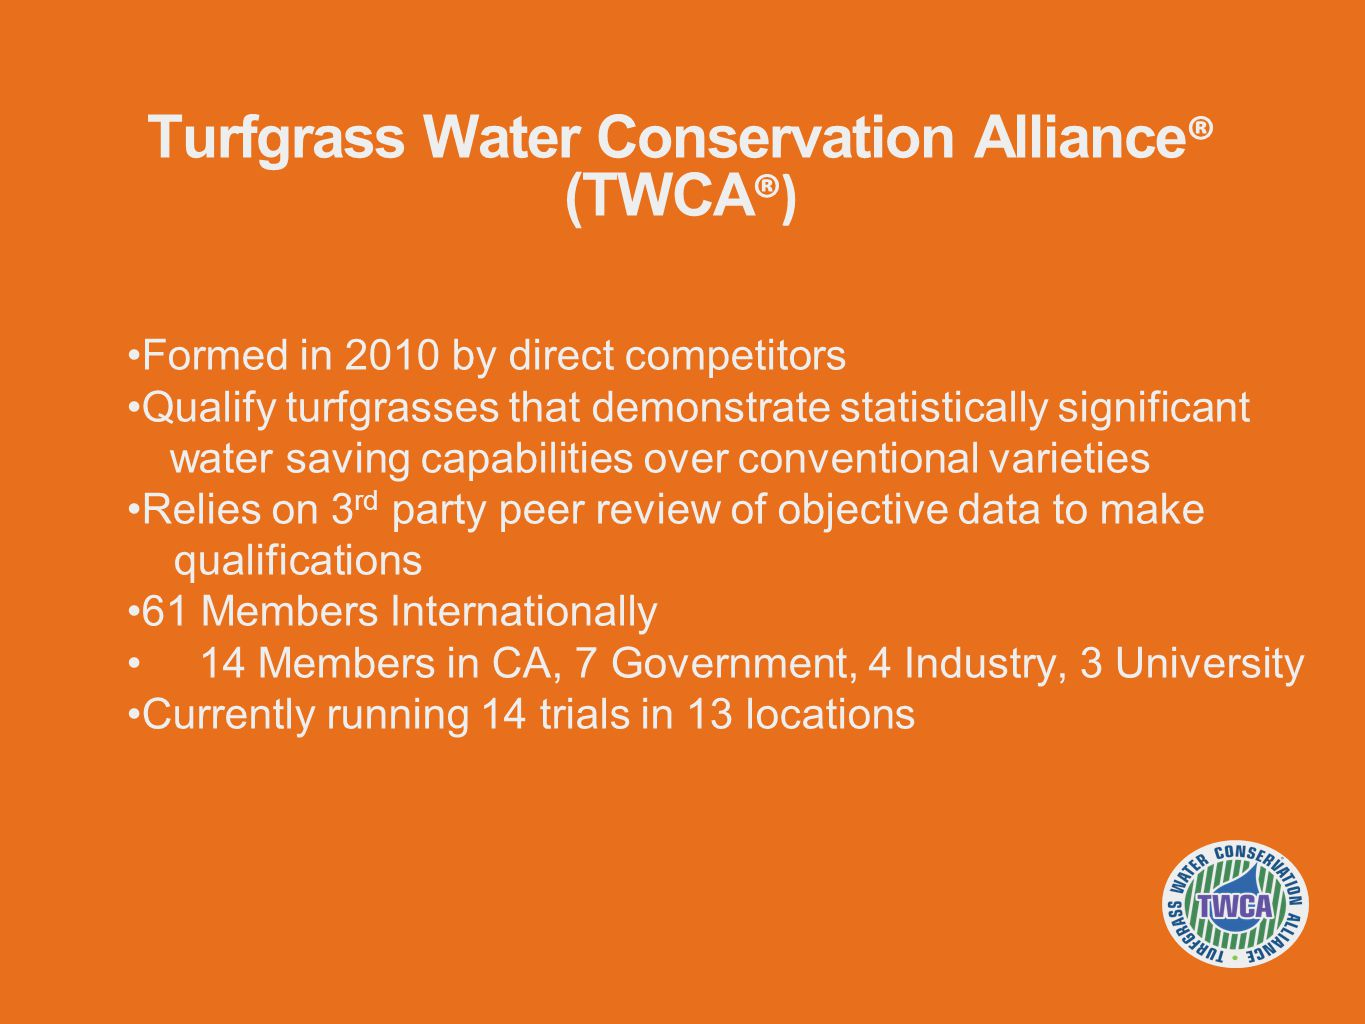 Conservation practices you recommend to the ITP State of California join the TWCA Implement TWCA qualification standards for all turfgrasses in the state Recognize TWCA qualified varieties as water saving varieties eligible for lawn replacement rebates Require TWCA qualification for all turfgrasses installed in the managed landscape